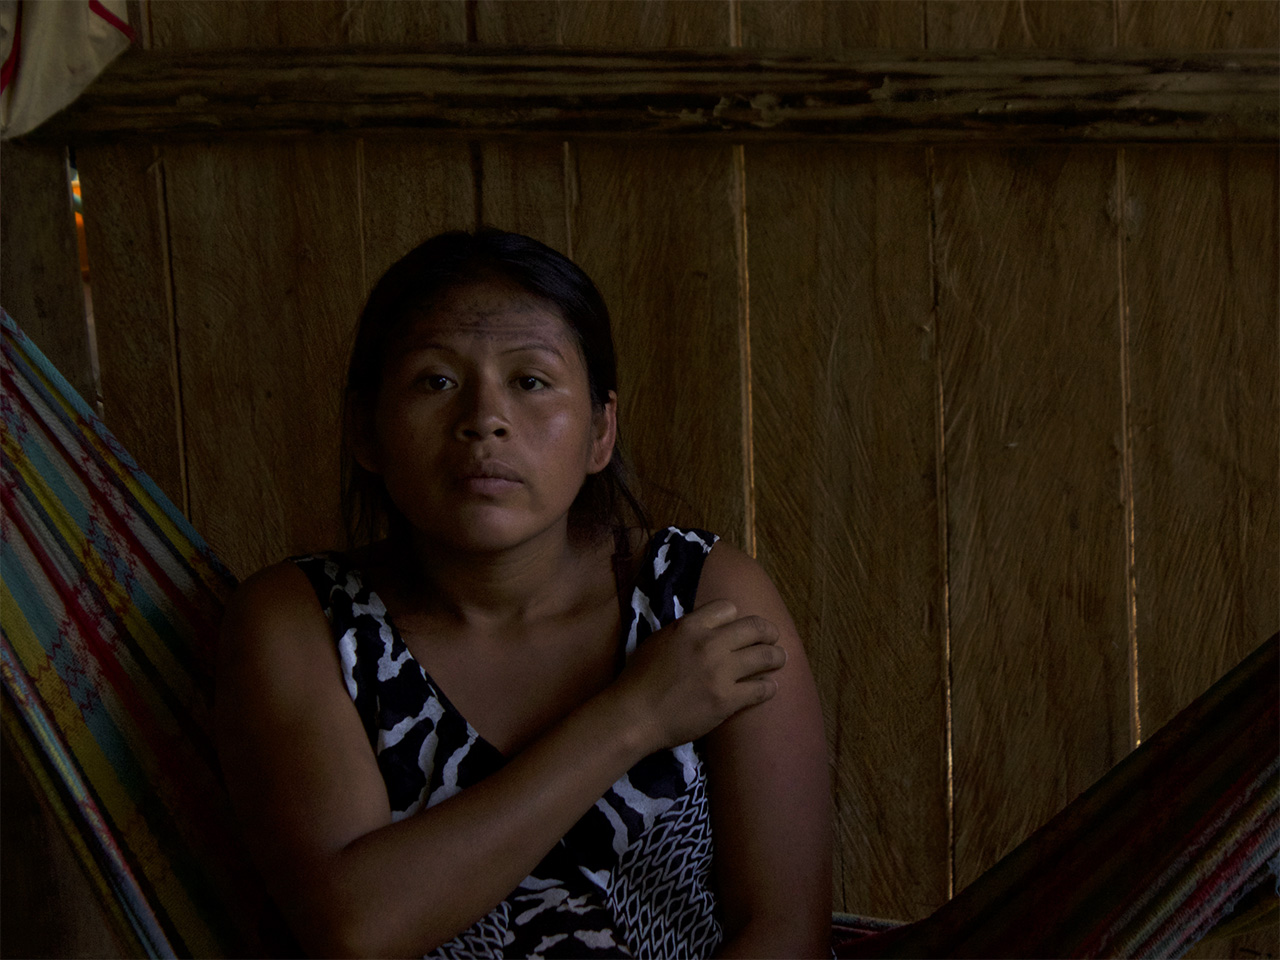 A 22-year old woman with four sons without needing caesarean section. Puyo, Ecuador.